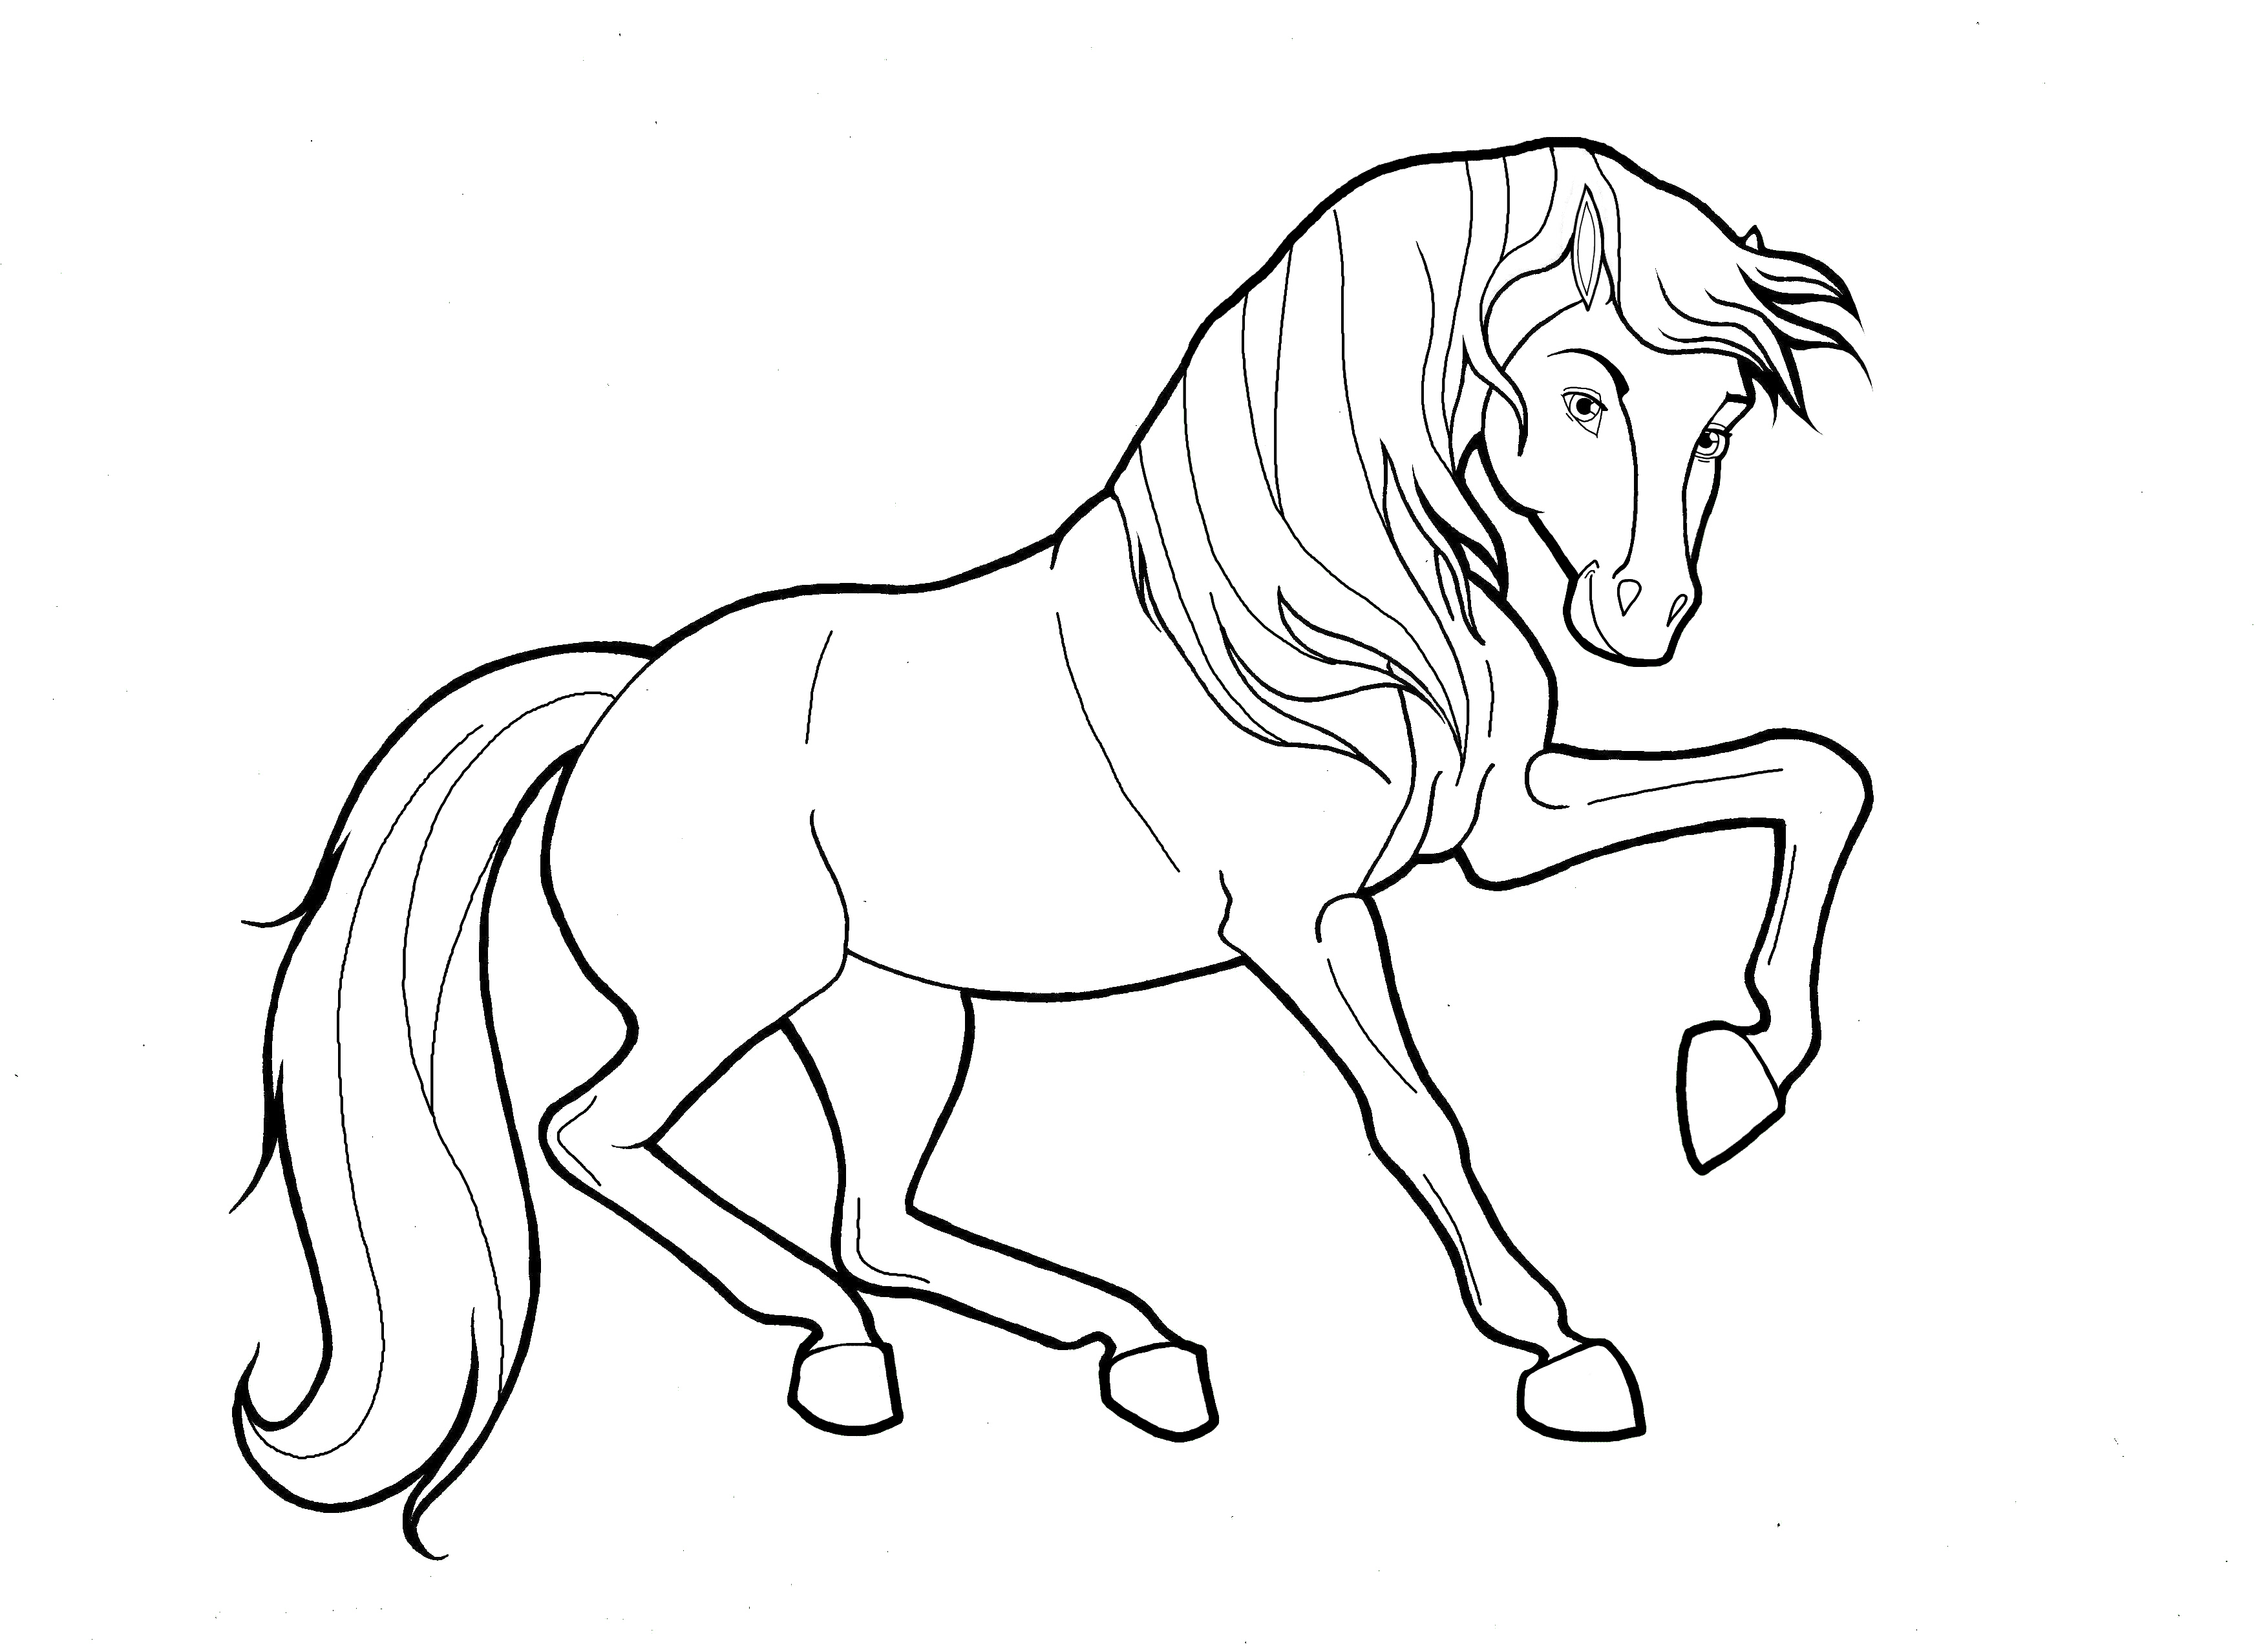 coloring page horse free horse coloring pages for adults kids cowgirl magazine page horse coloring